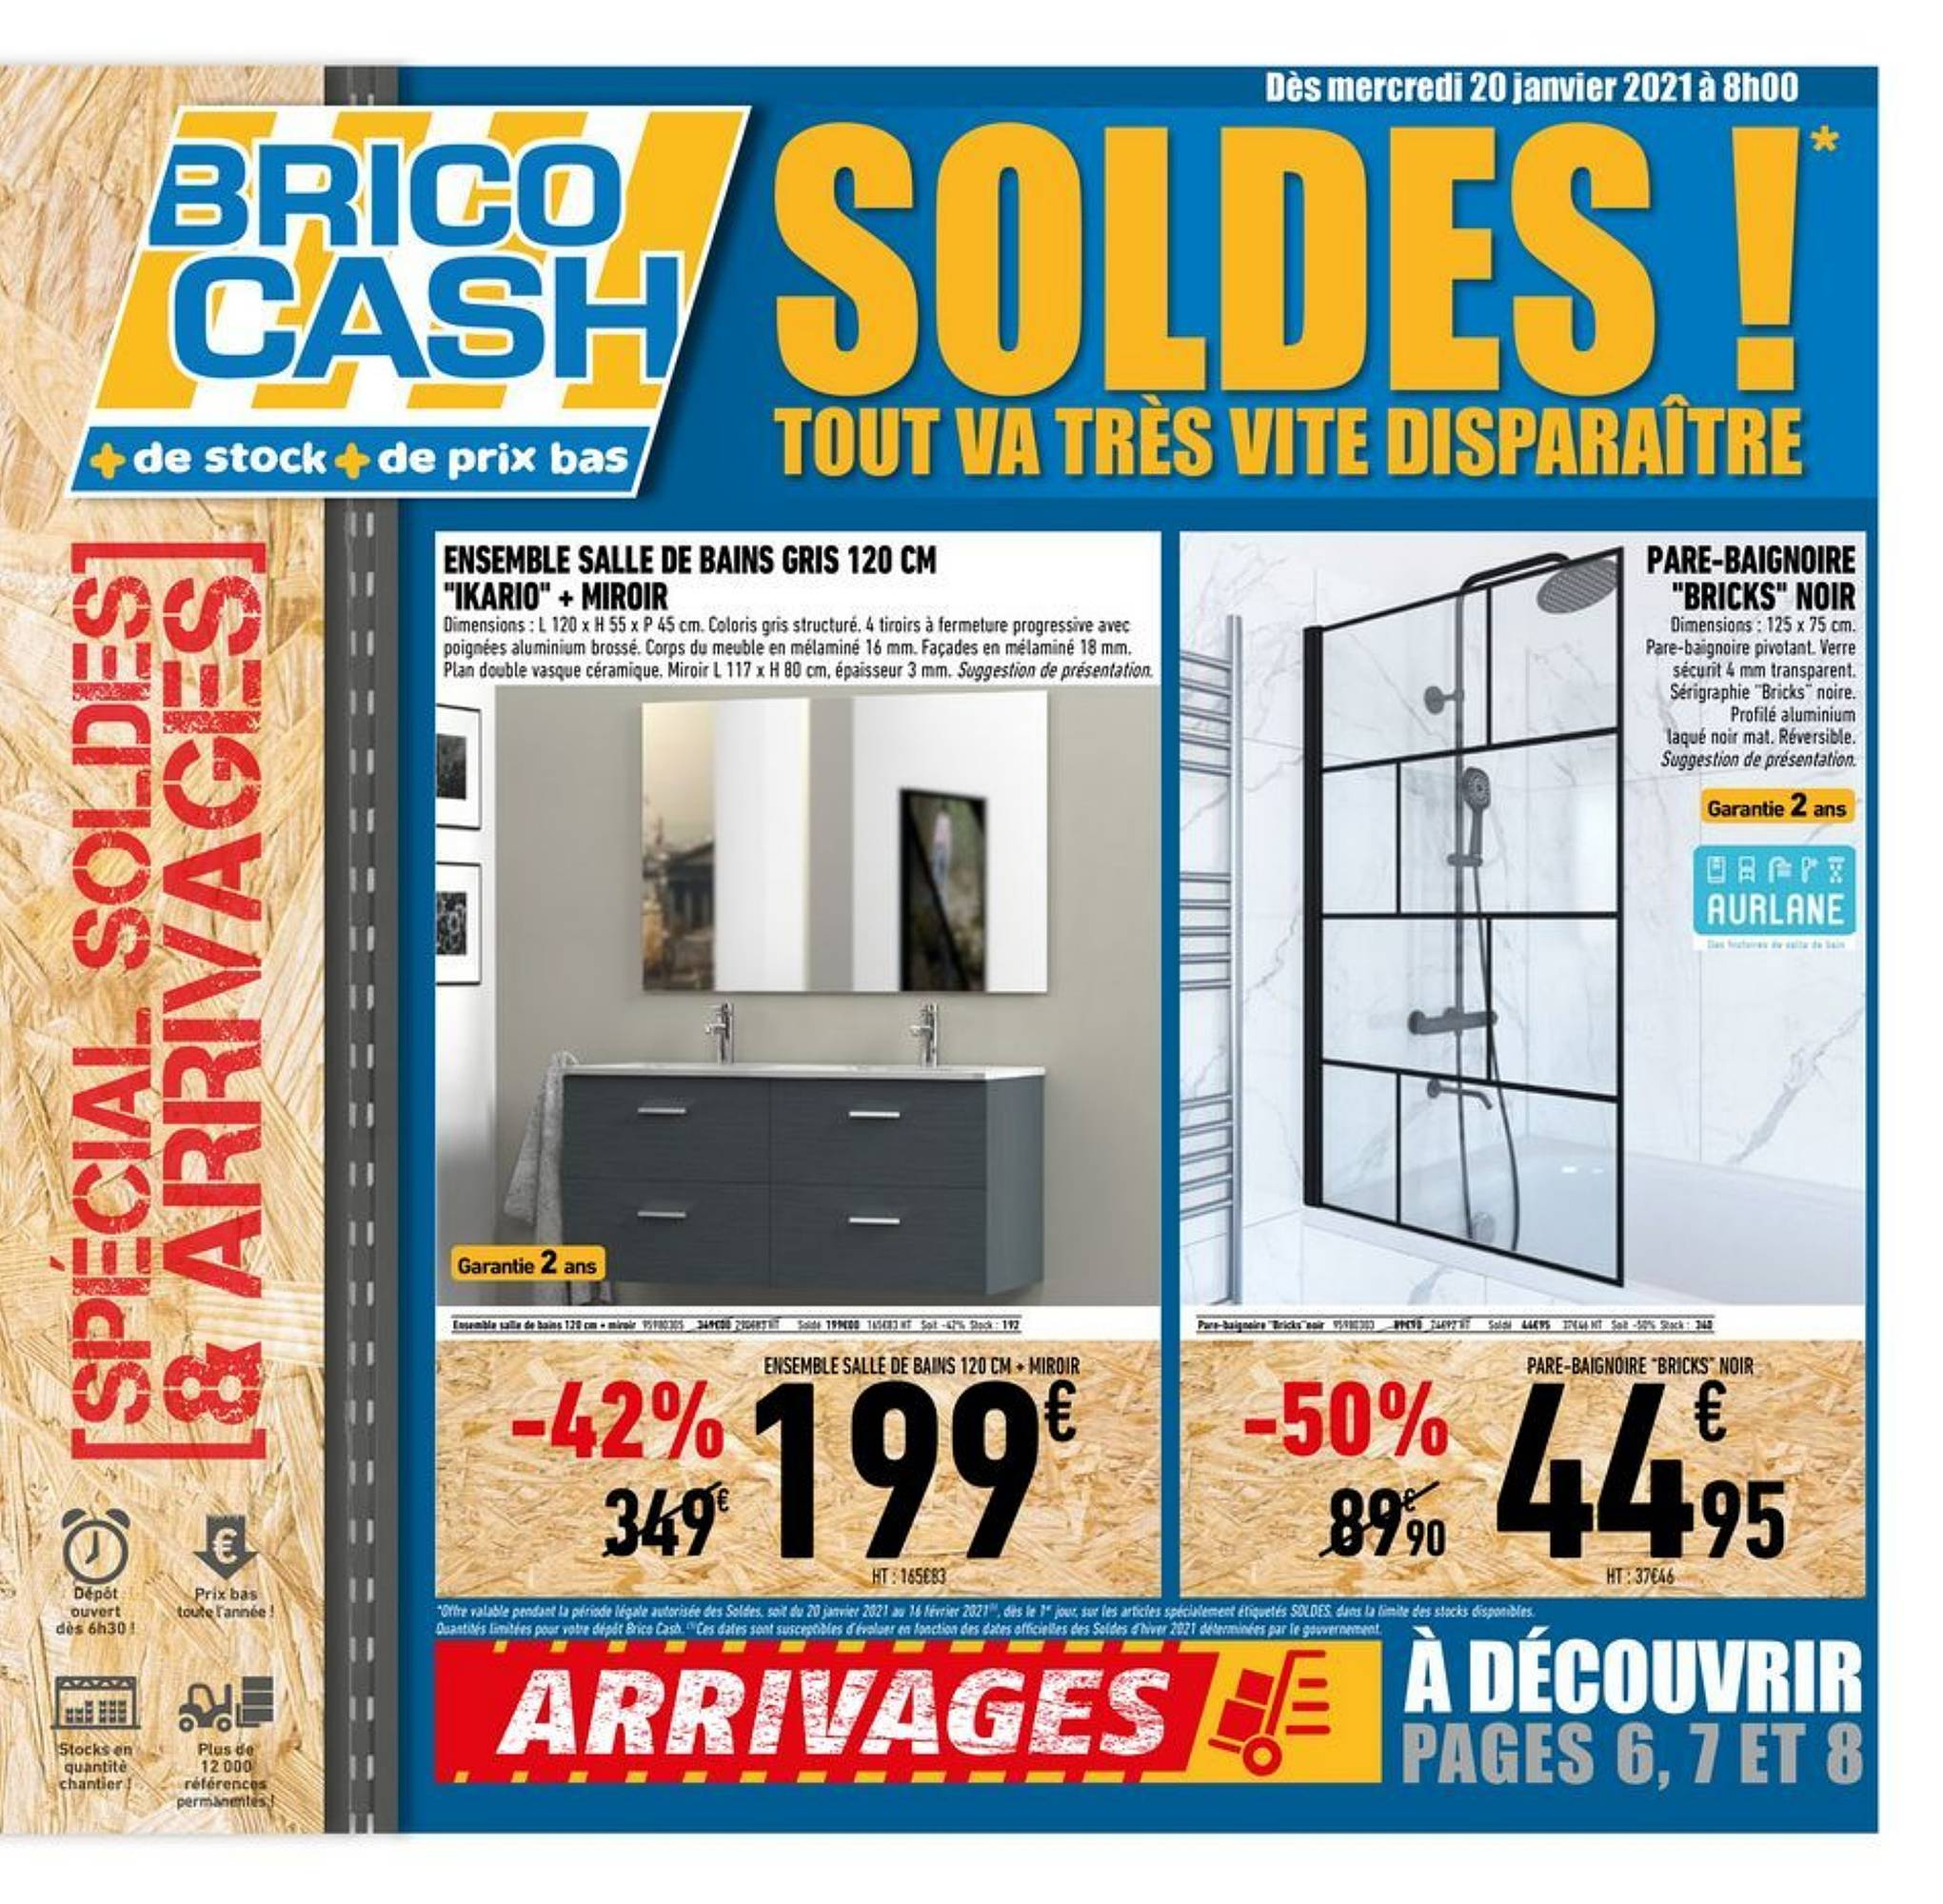 Brico Cash - Catalogue, Réduction Et Code Promo Février 2021 serapportantà Abri De Jardin Brico Cash